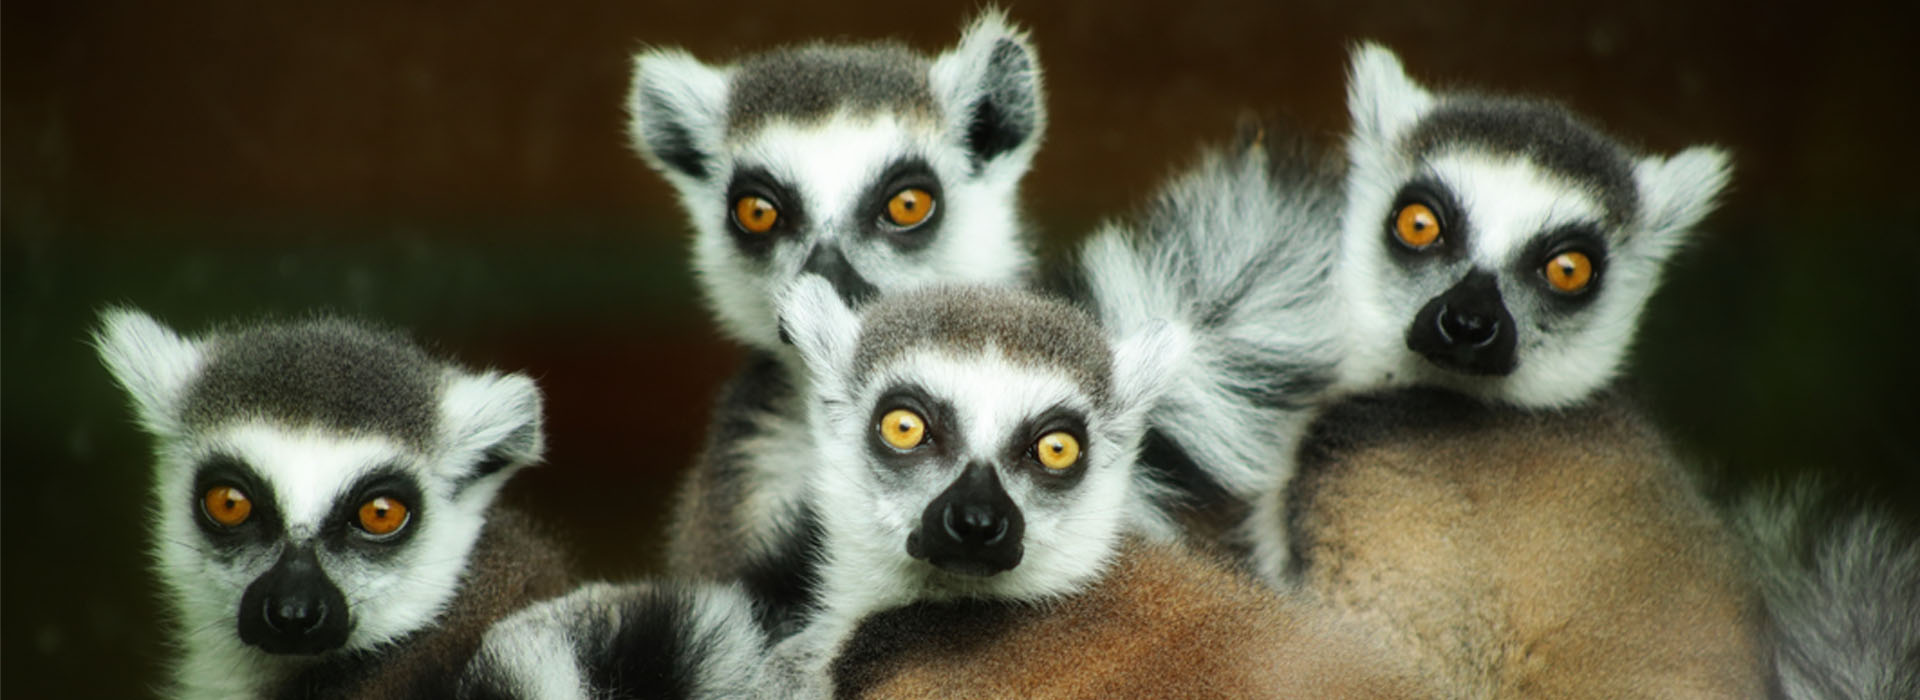 Madagascar 14 Day Adventure - African Adventure Specialists